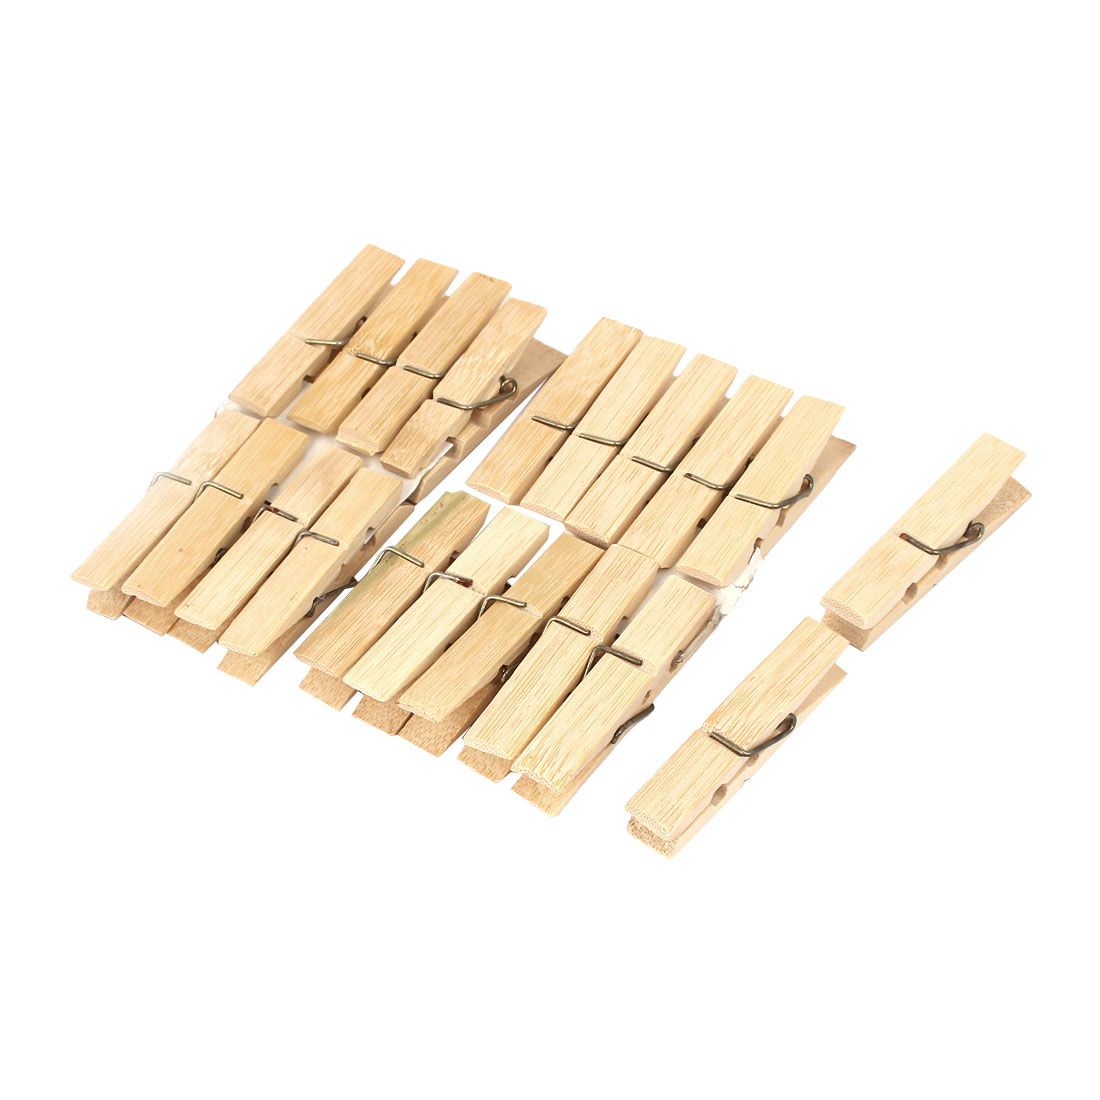 Unique Bargains Wood Clothespins Wooden Laundry Clothes Pins Large Spring 20pcs for Home Essential